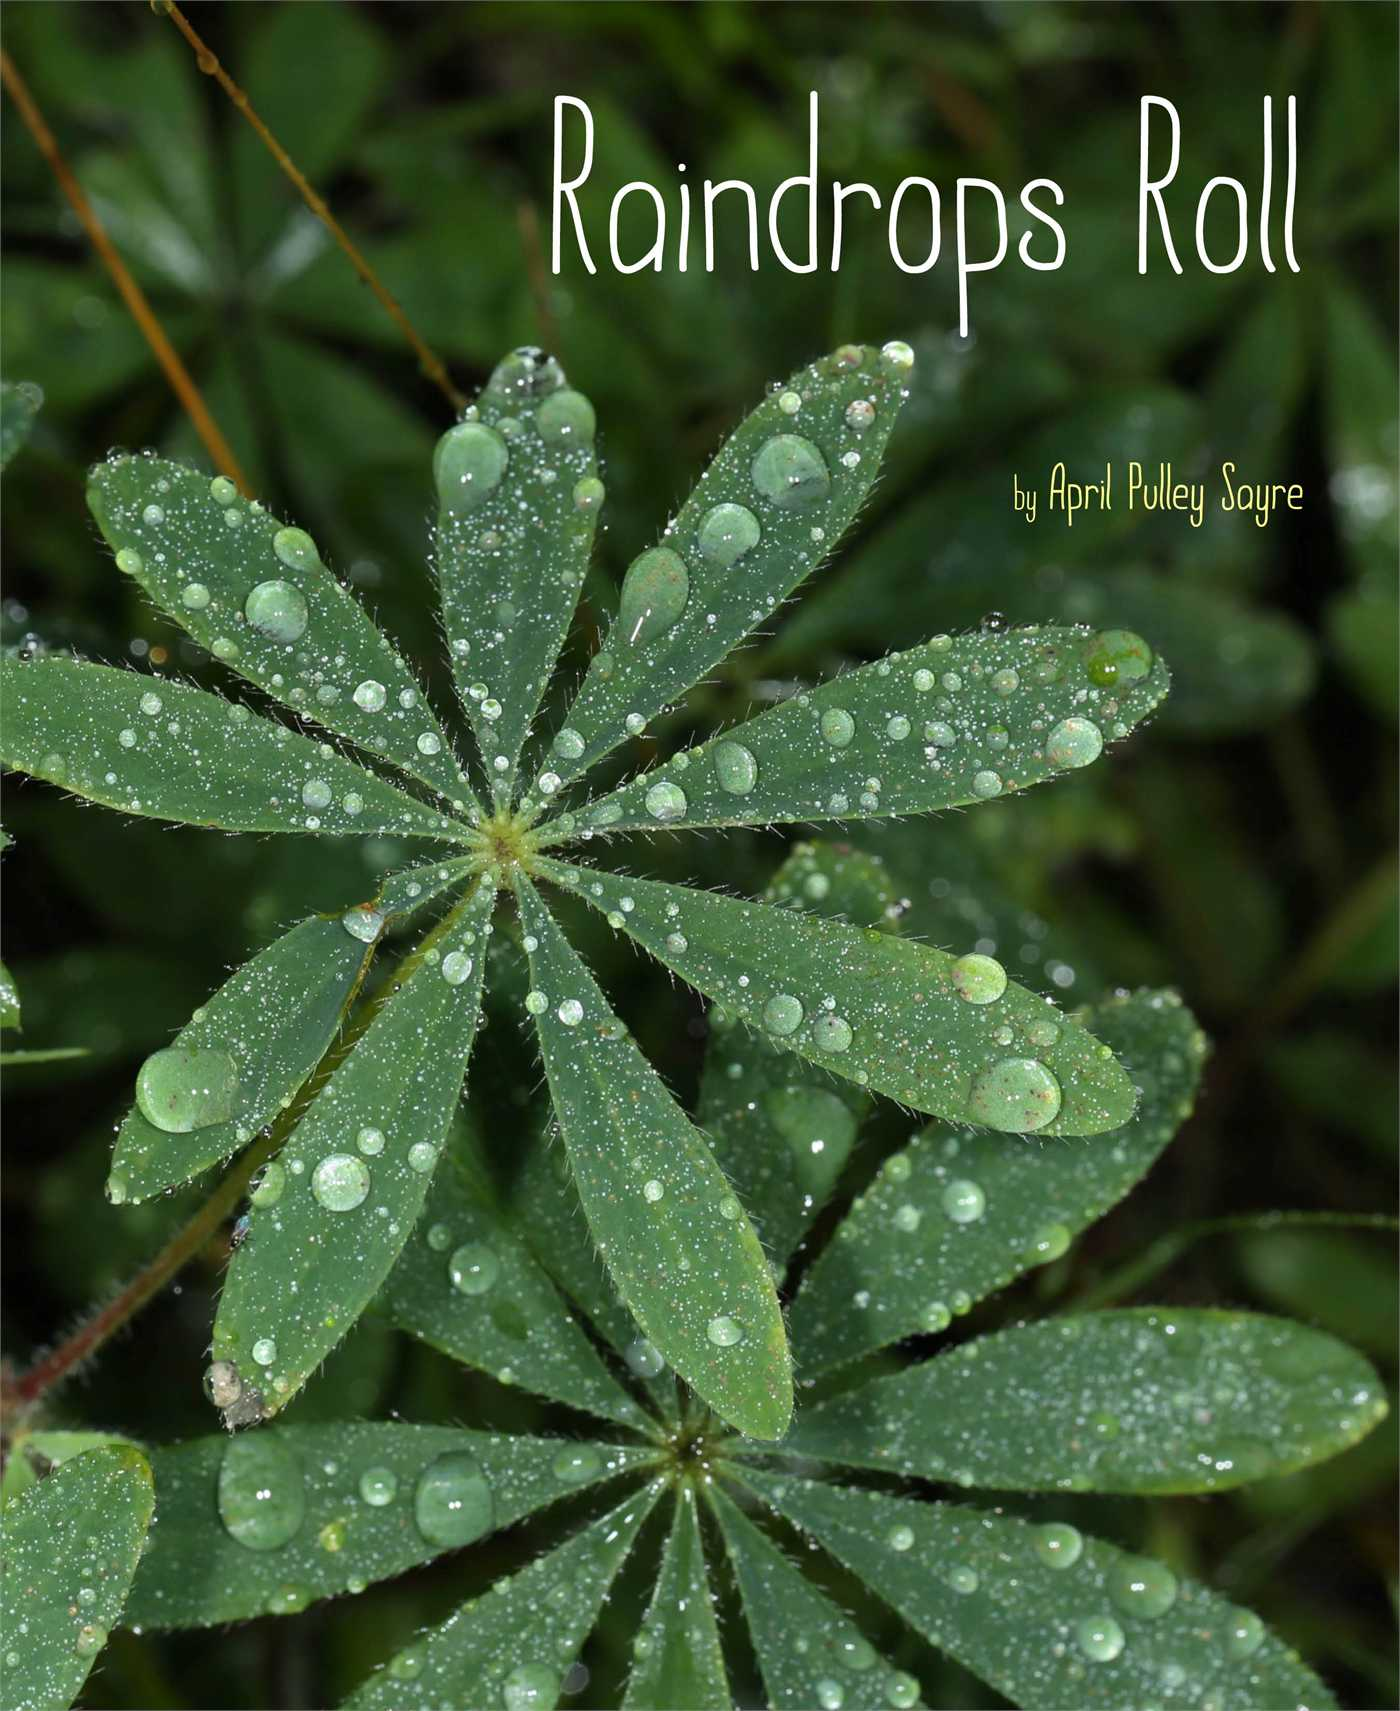 Raindrops roll 9781481420648 hr